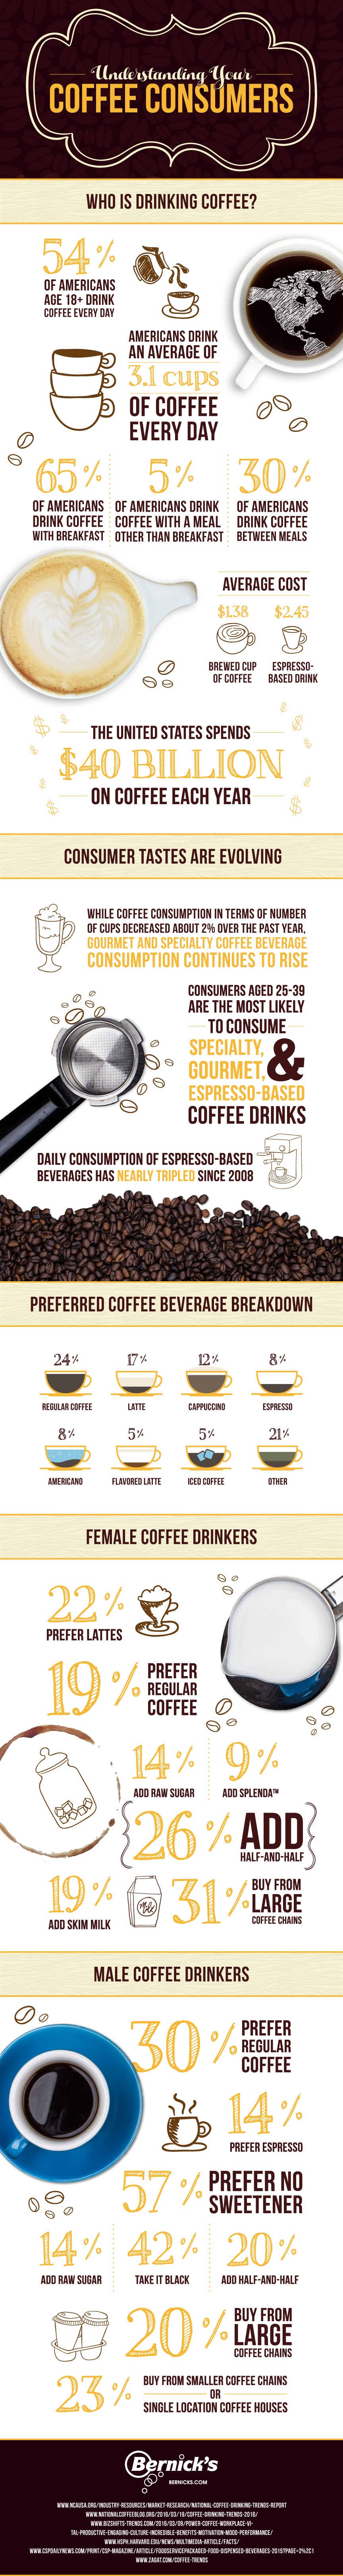 Bernicks-Understanding_Your_Coffee_Consumers-Infographic-01.jpg